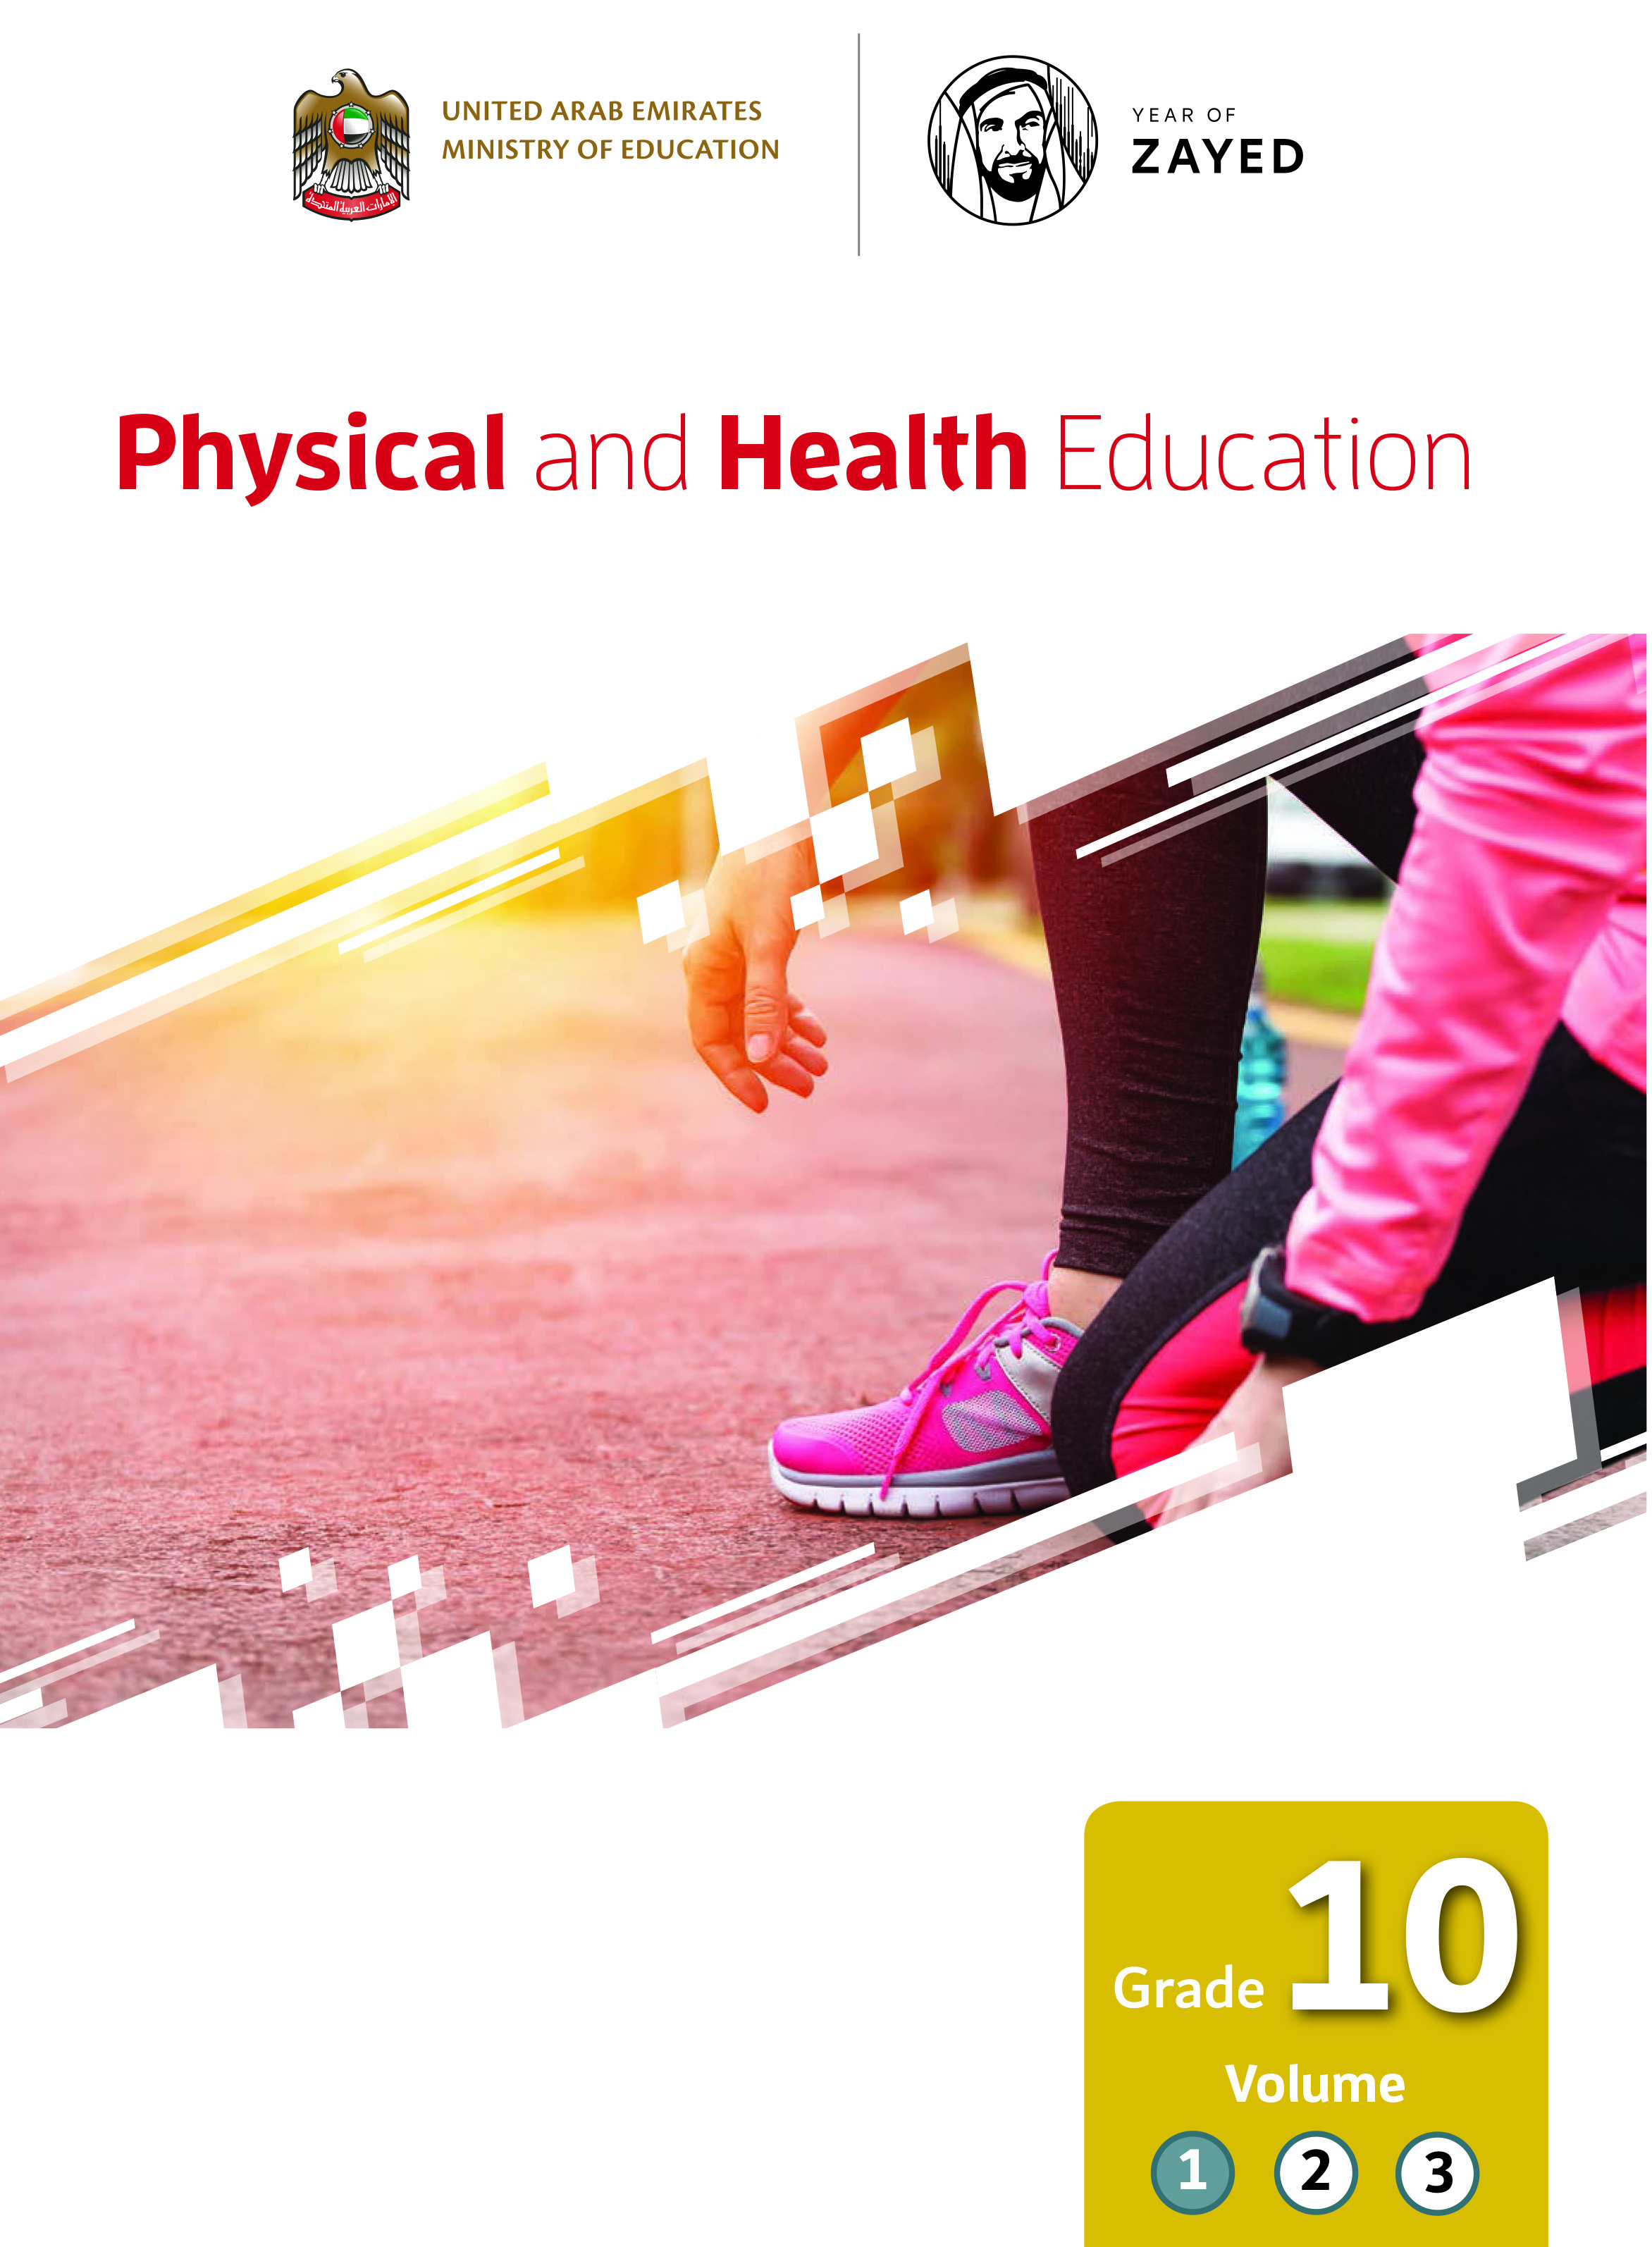 Physical and Health Education - SE_Girl - G10 - P01